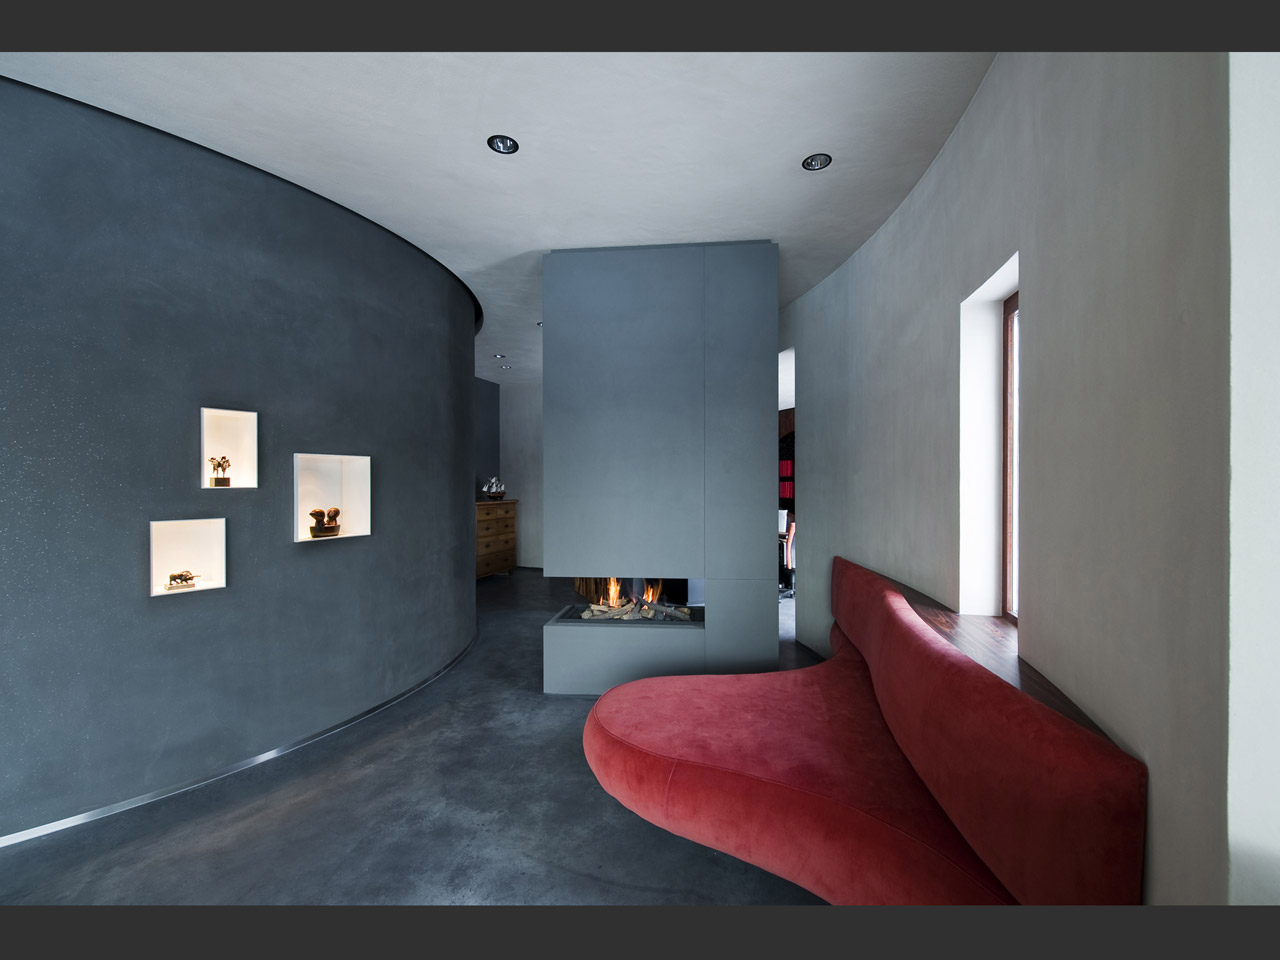 Custom made fireplace and a sofa inspired by the Mae West Lips Sofa by Salvador Dalí.